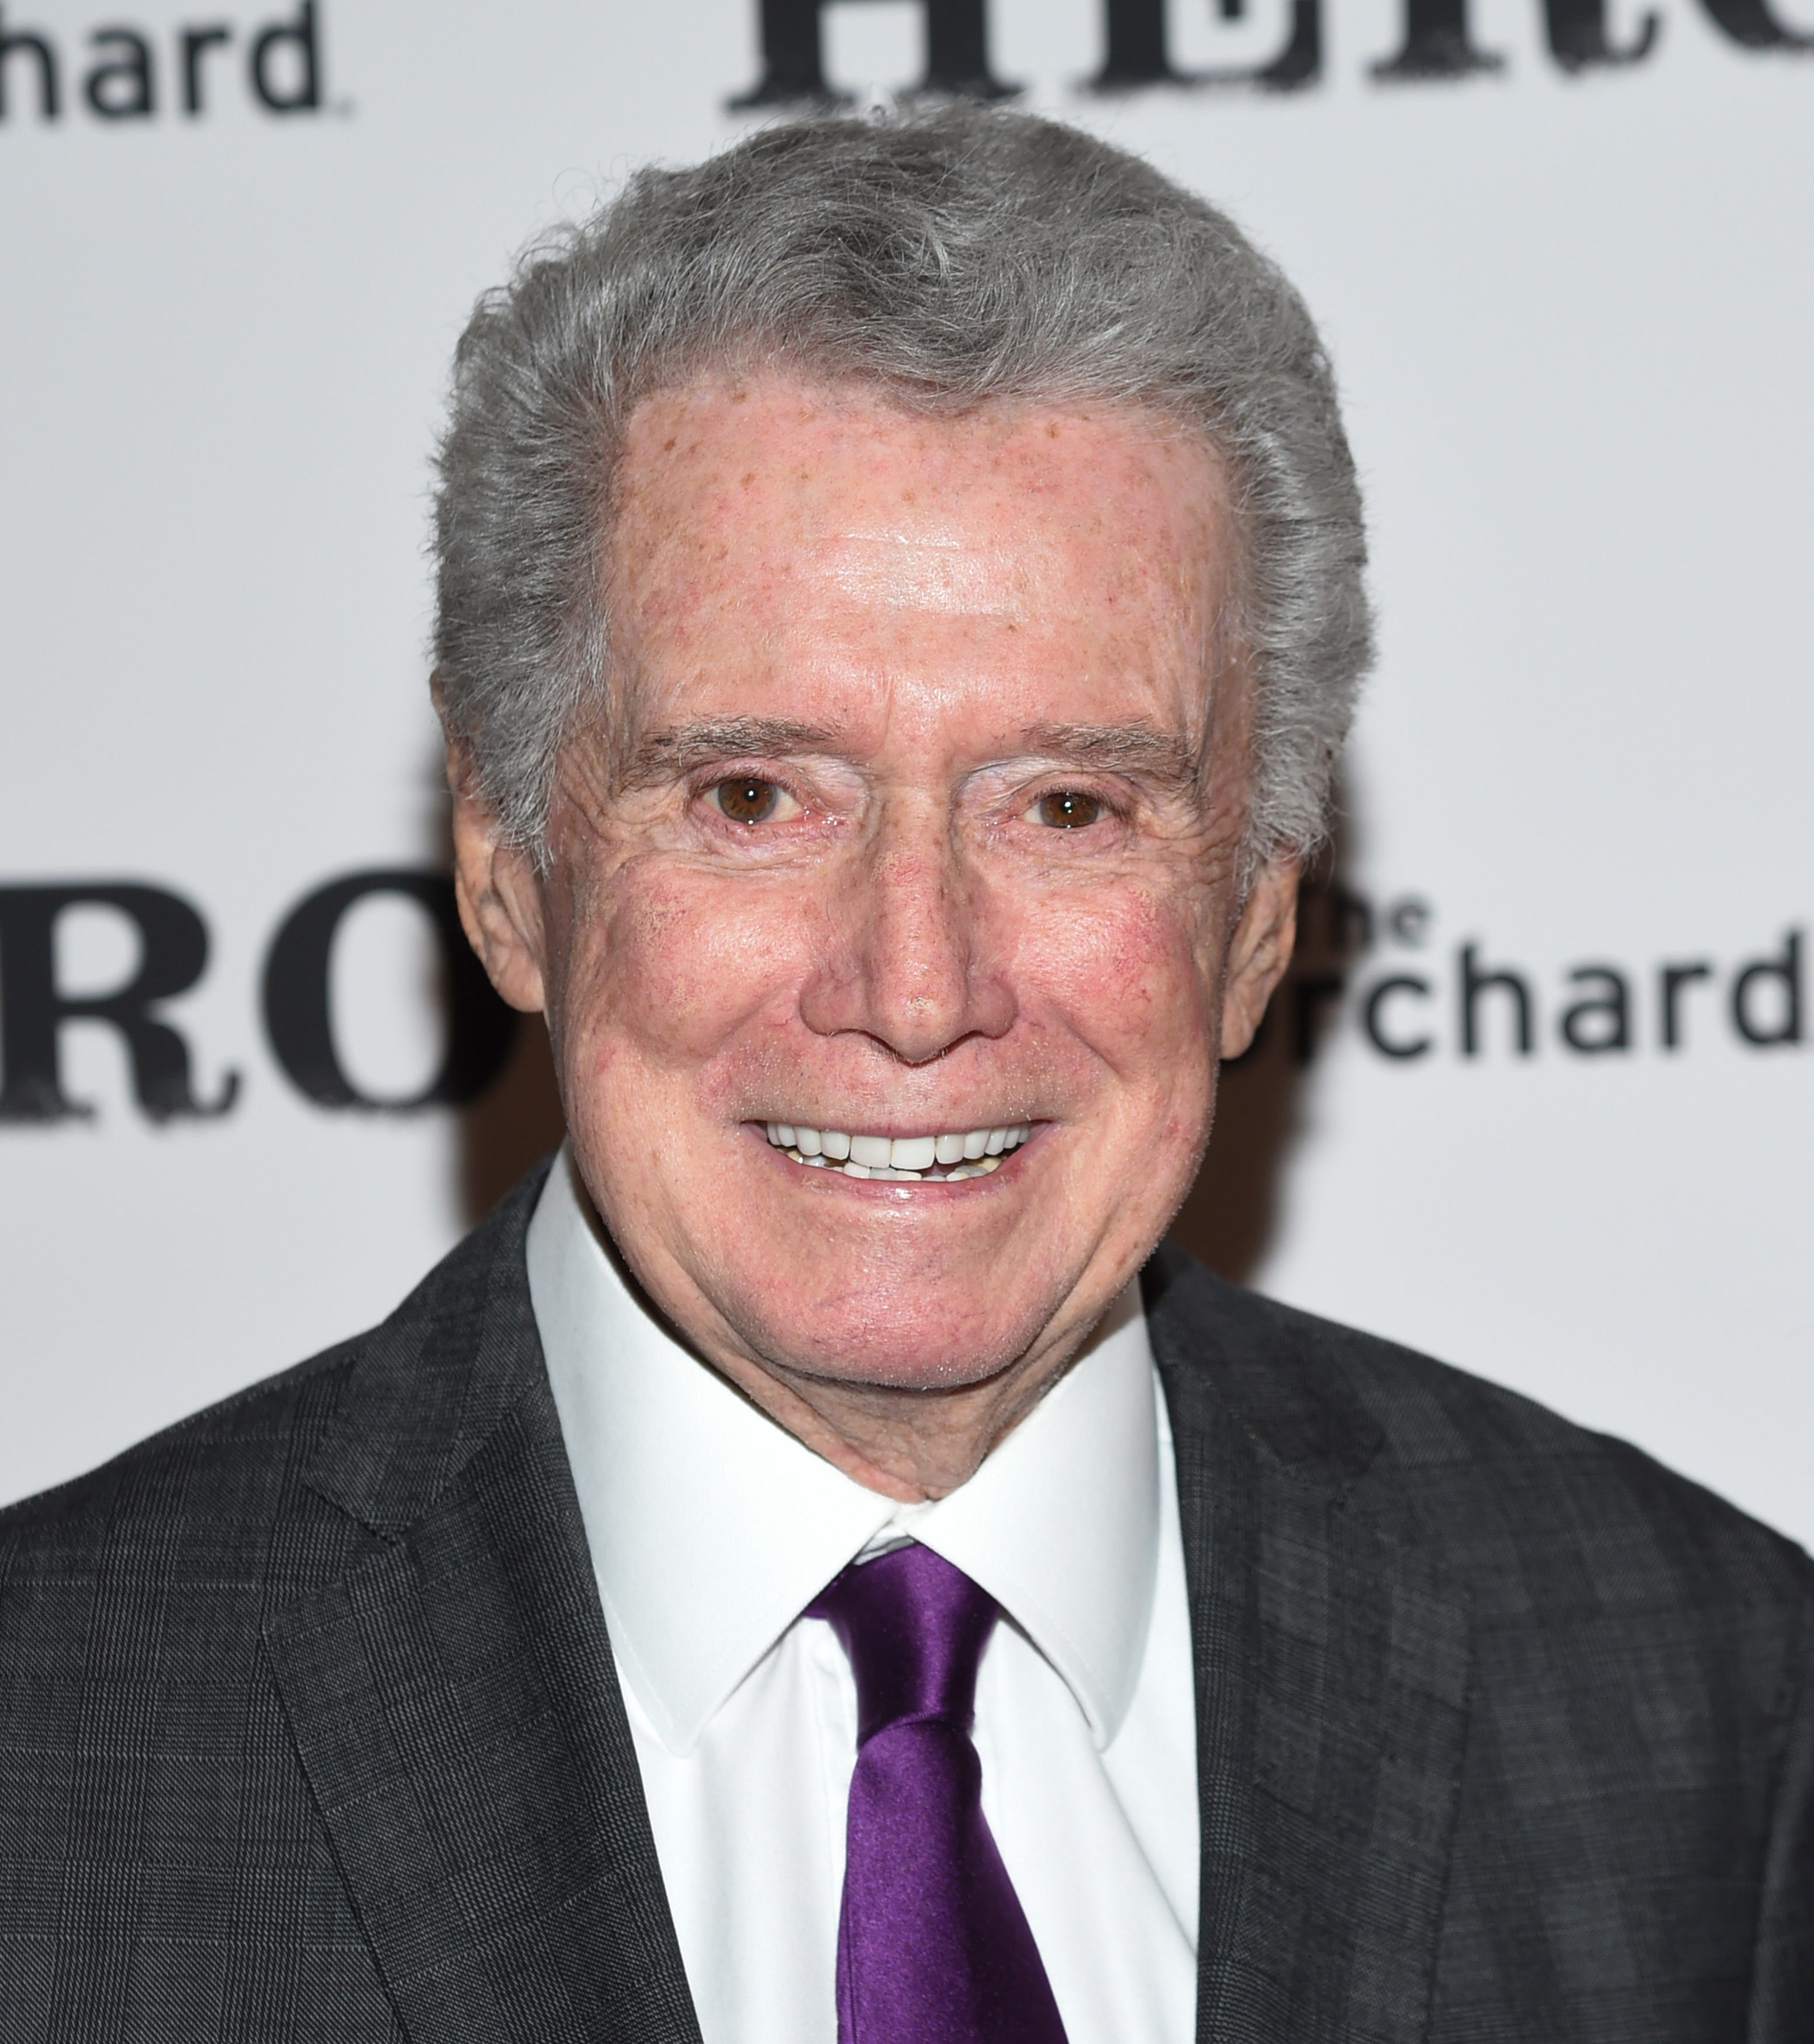 Regis Philbin s cause of death revealed as a heart attack from coronary artery disease